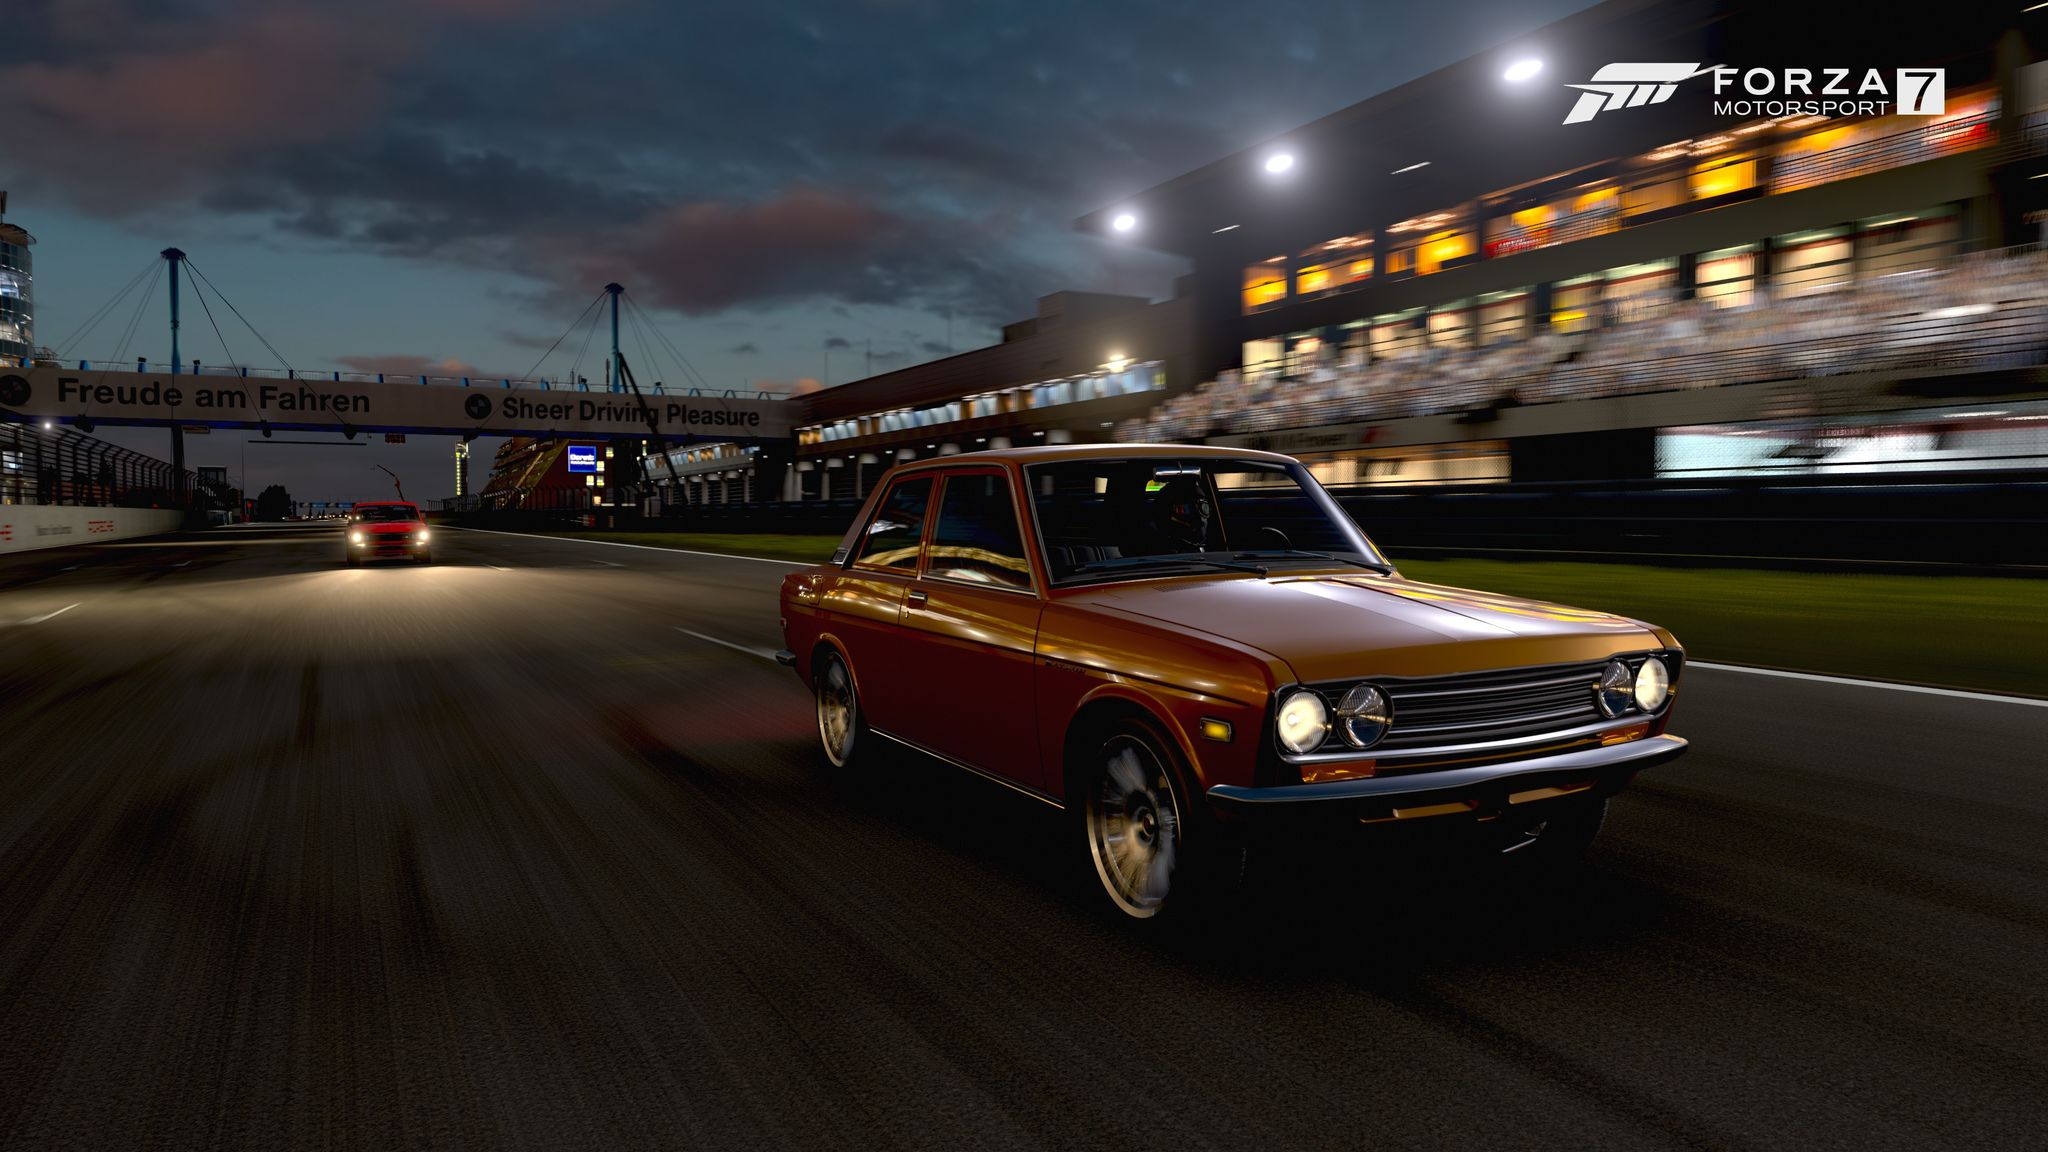 A screenshot from Forza Motorsport 7 showing a Datsun 510 at night zooming down the finishing straight at the Nurburgring GP circuit.